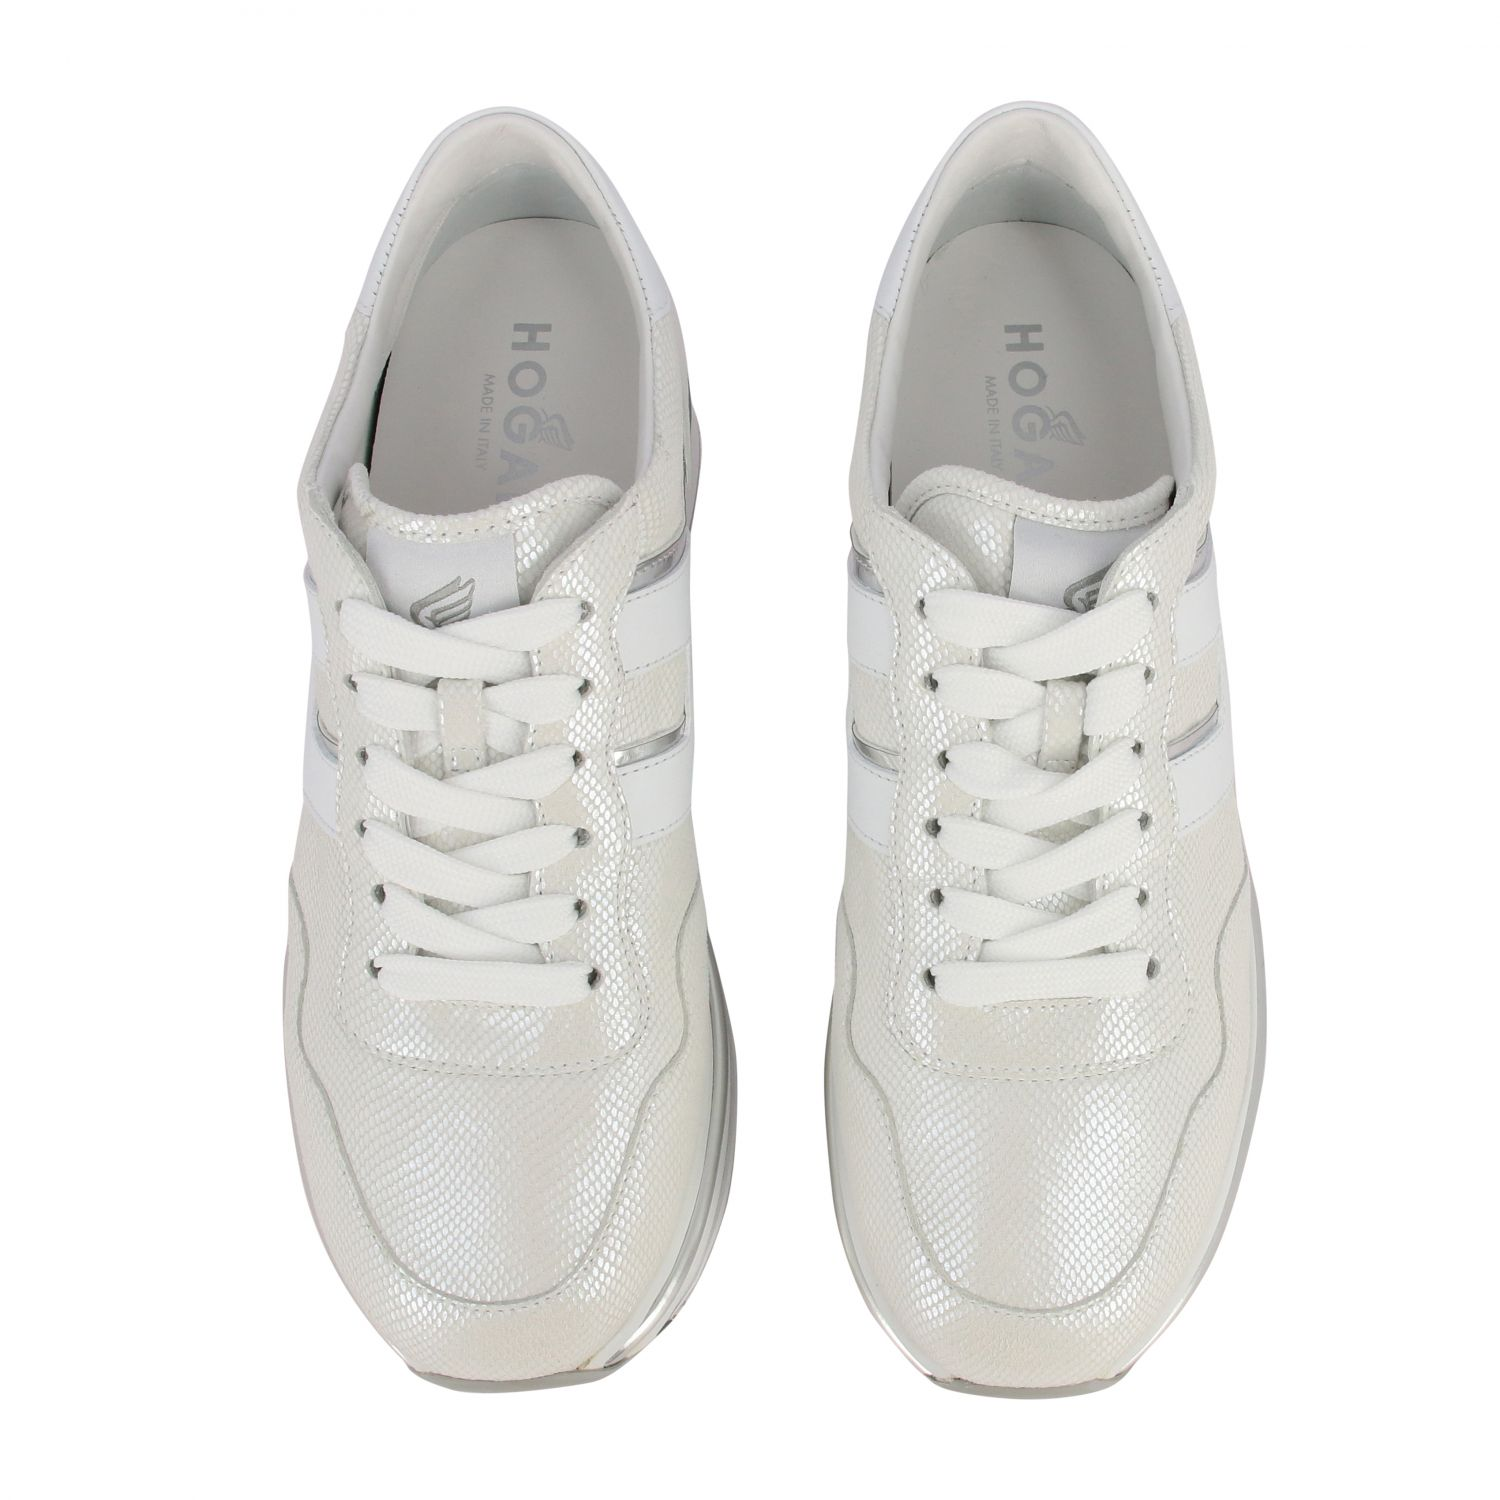 Hogan 468 midi platform sneakers in leather with big H and glitter piping white 3